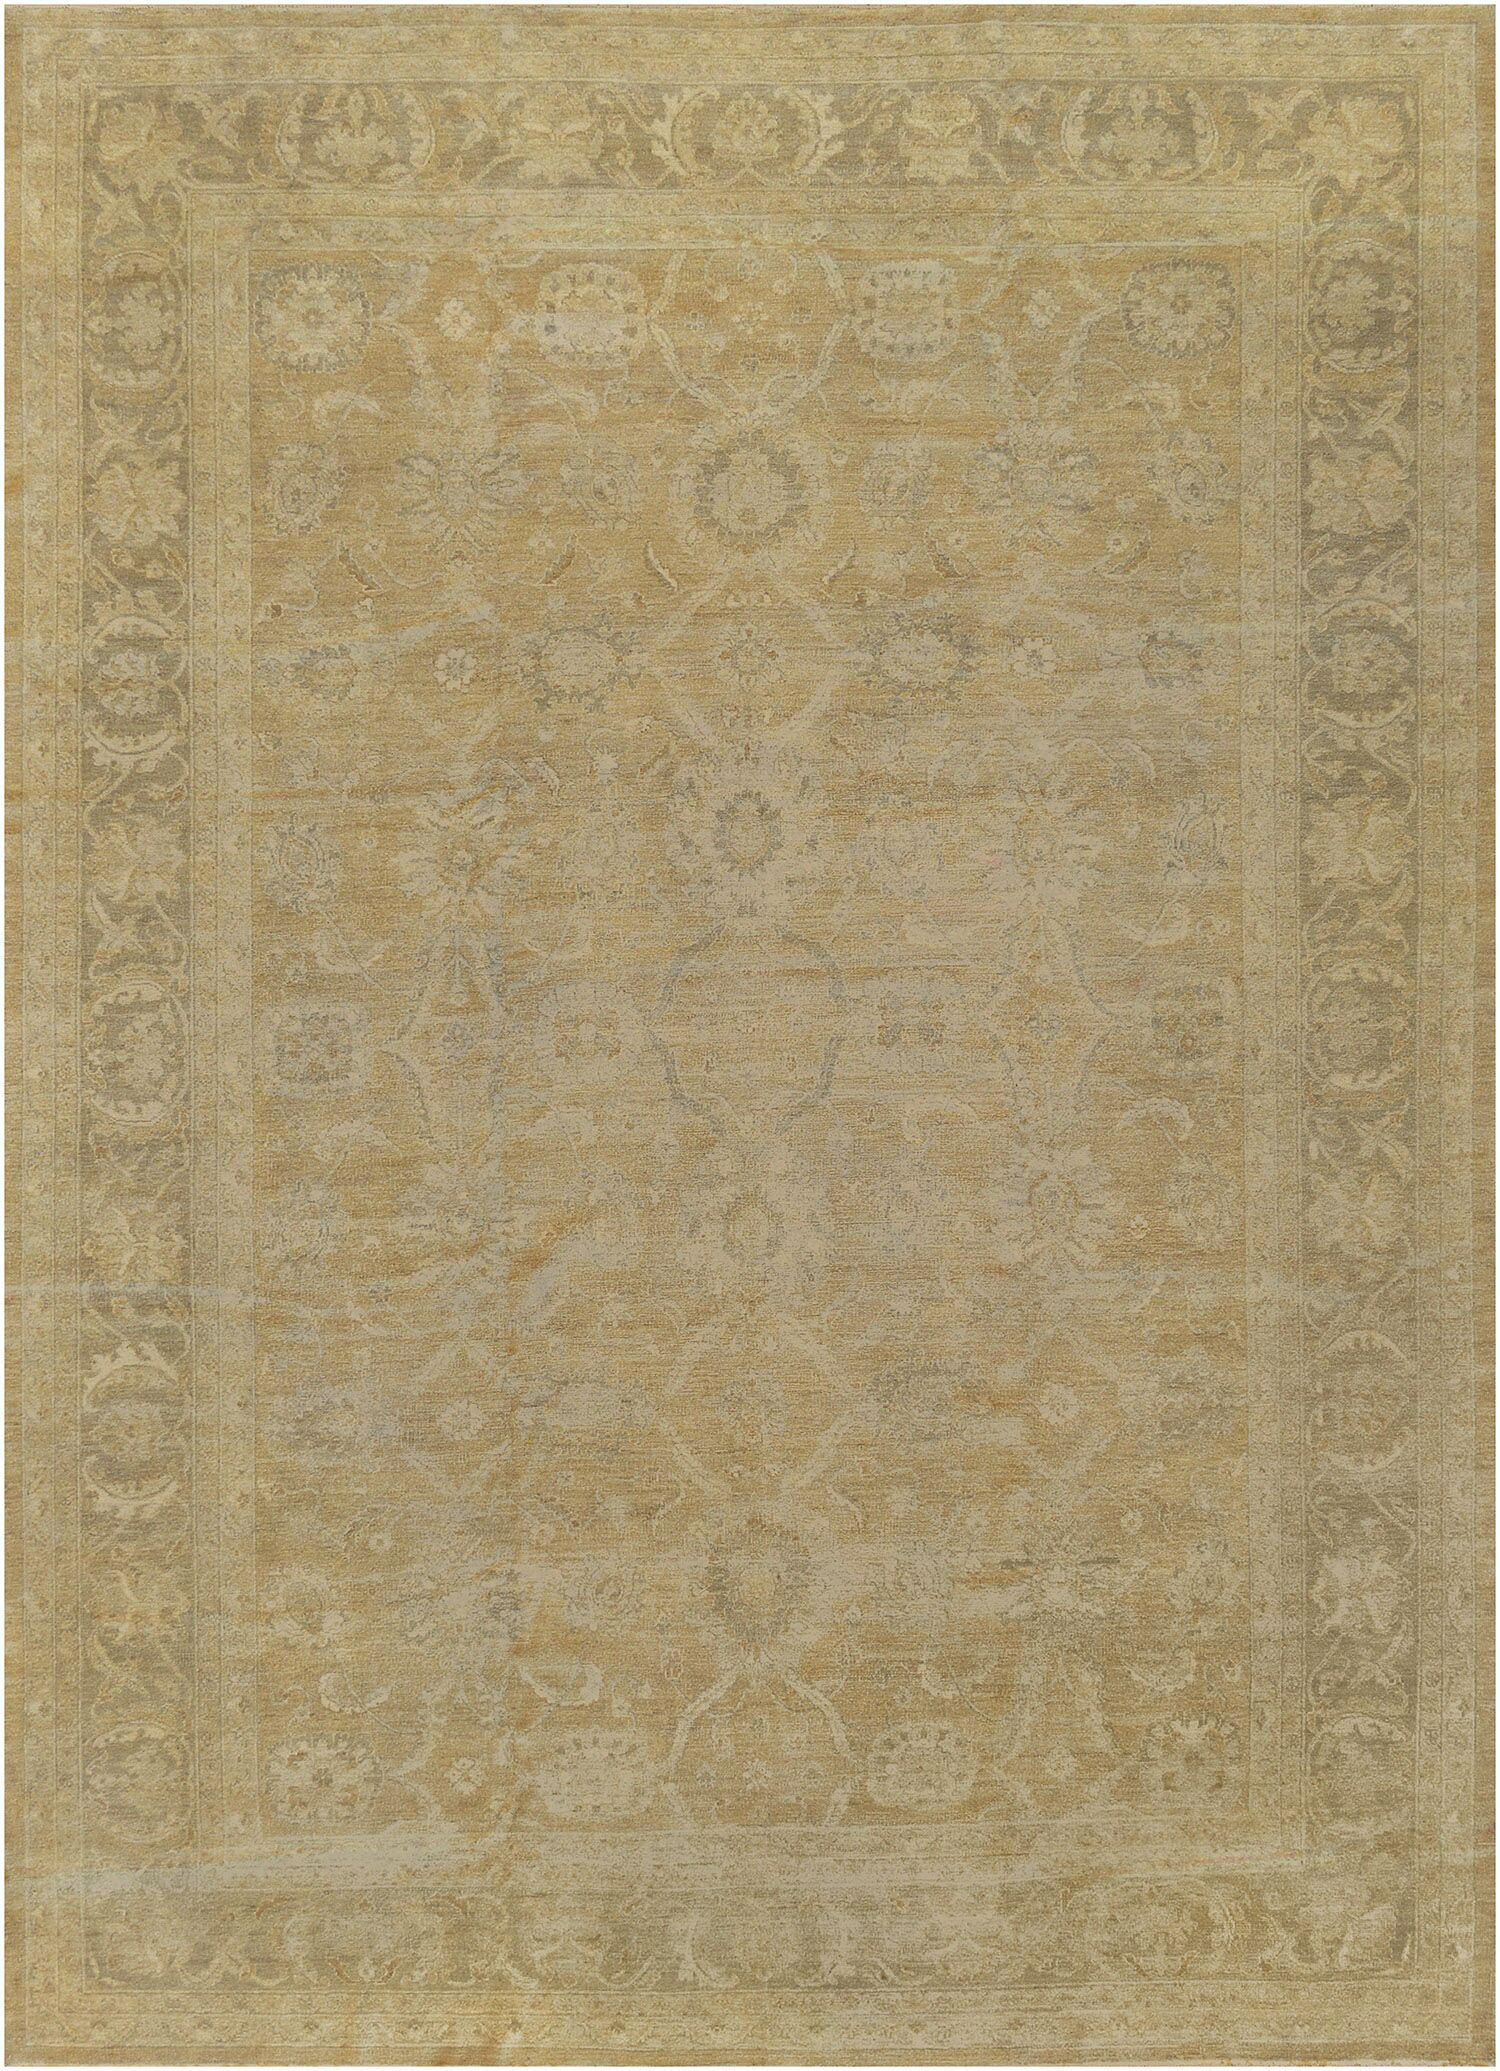 One-of-a-Kind Sultanabad Handwoven Wool Camel Indoor Area Rug